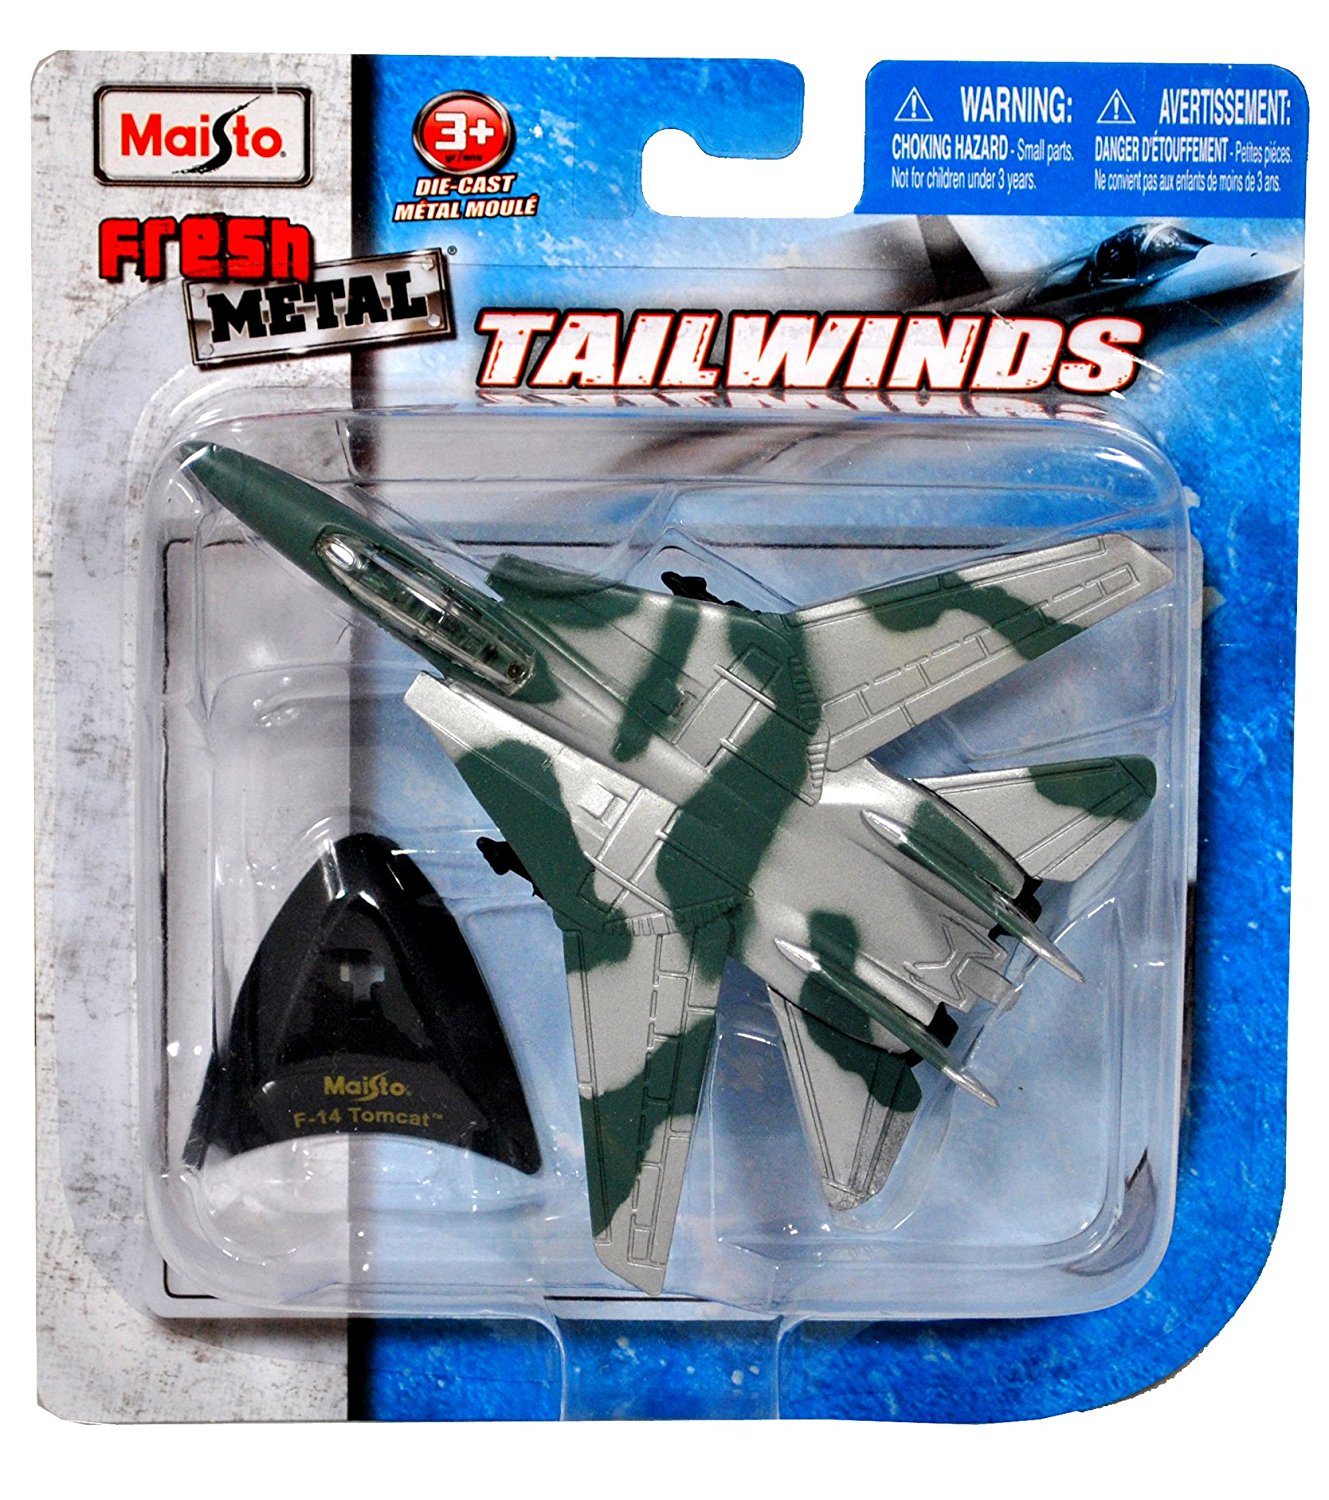 """Maisto Fresh Metal Tailwinds 1:150 Scale Die Cast United States Military Aircraft - U.S. Navy Supersonic, Twin-Engine, Two-Seat, Variable Geometry Wing Aircraft F-14 Tomcat with Display Stand (Dimension: 4-1/2"""" x 5"""" x 1"""")"""